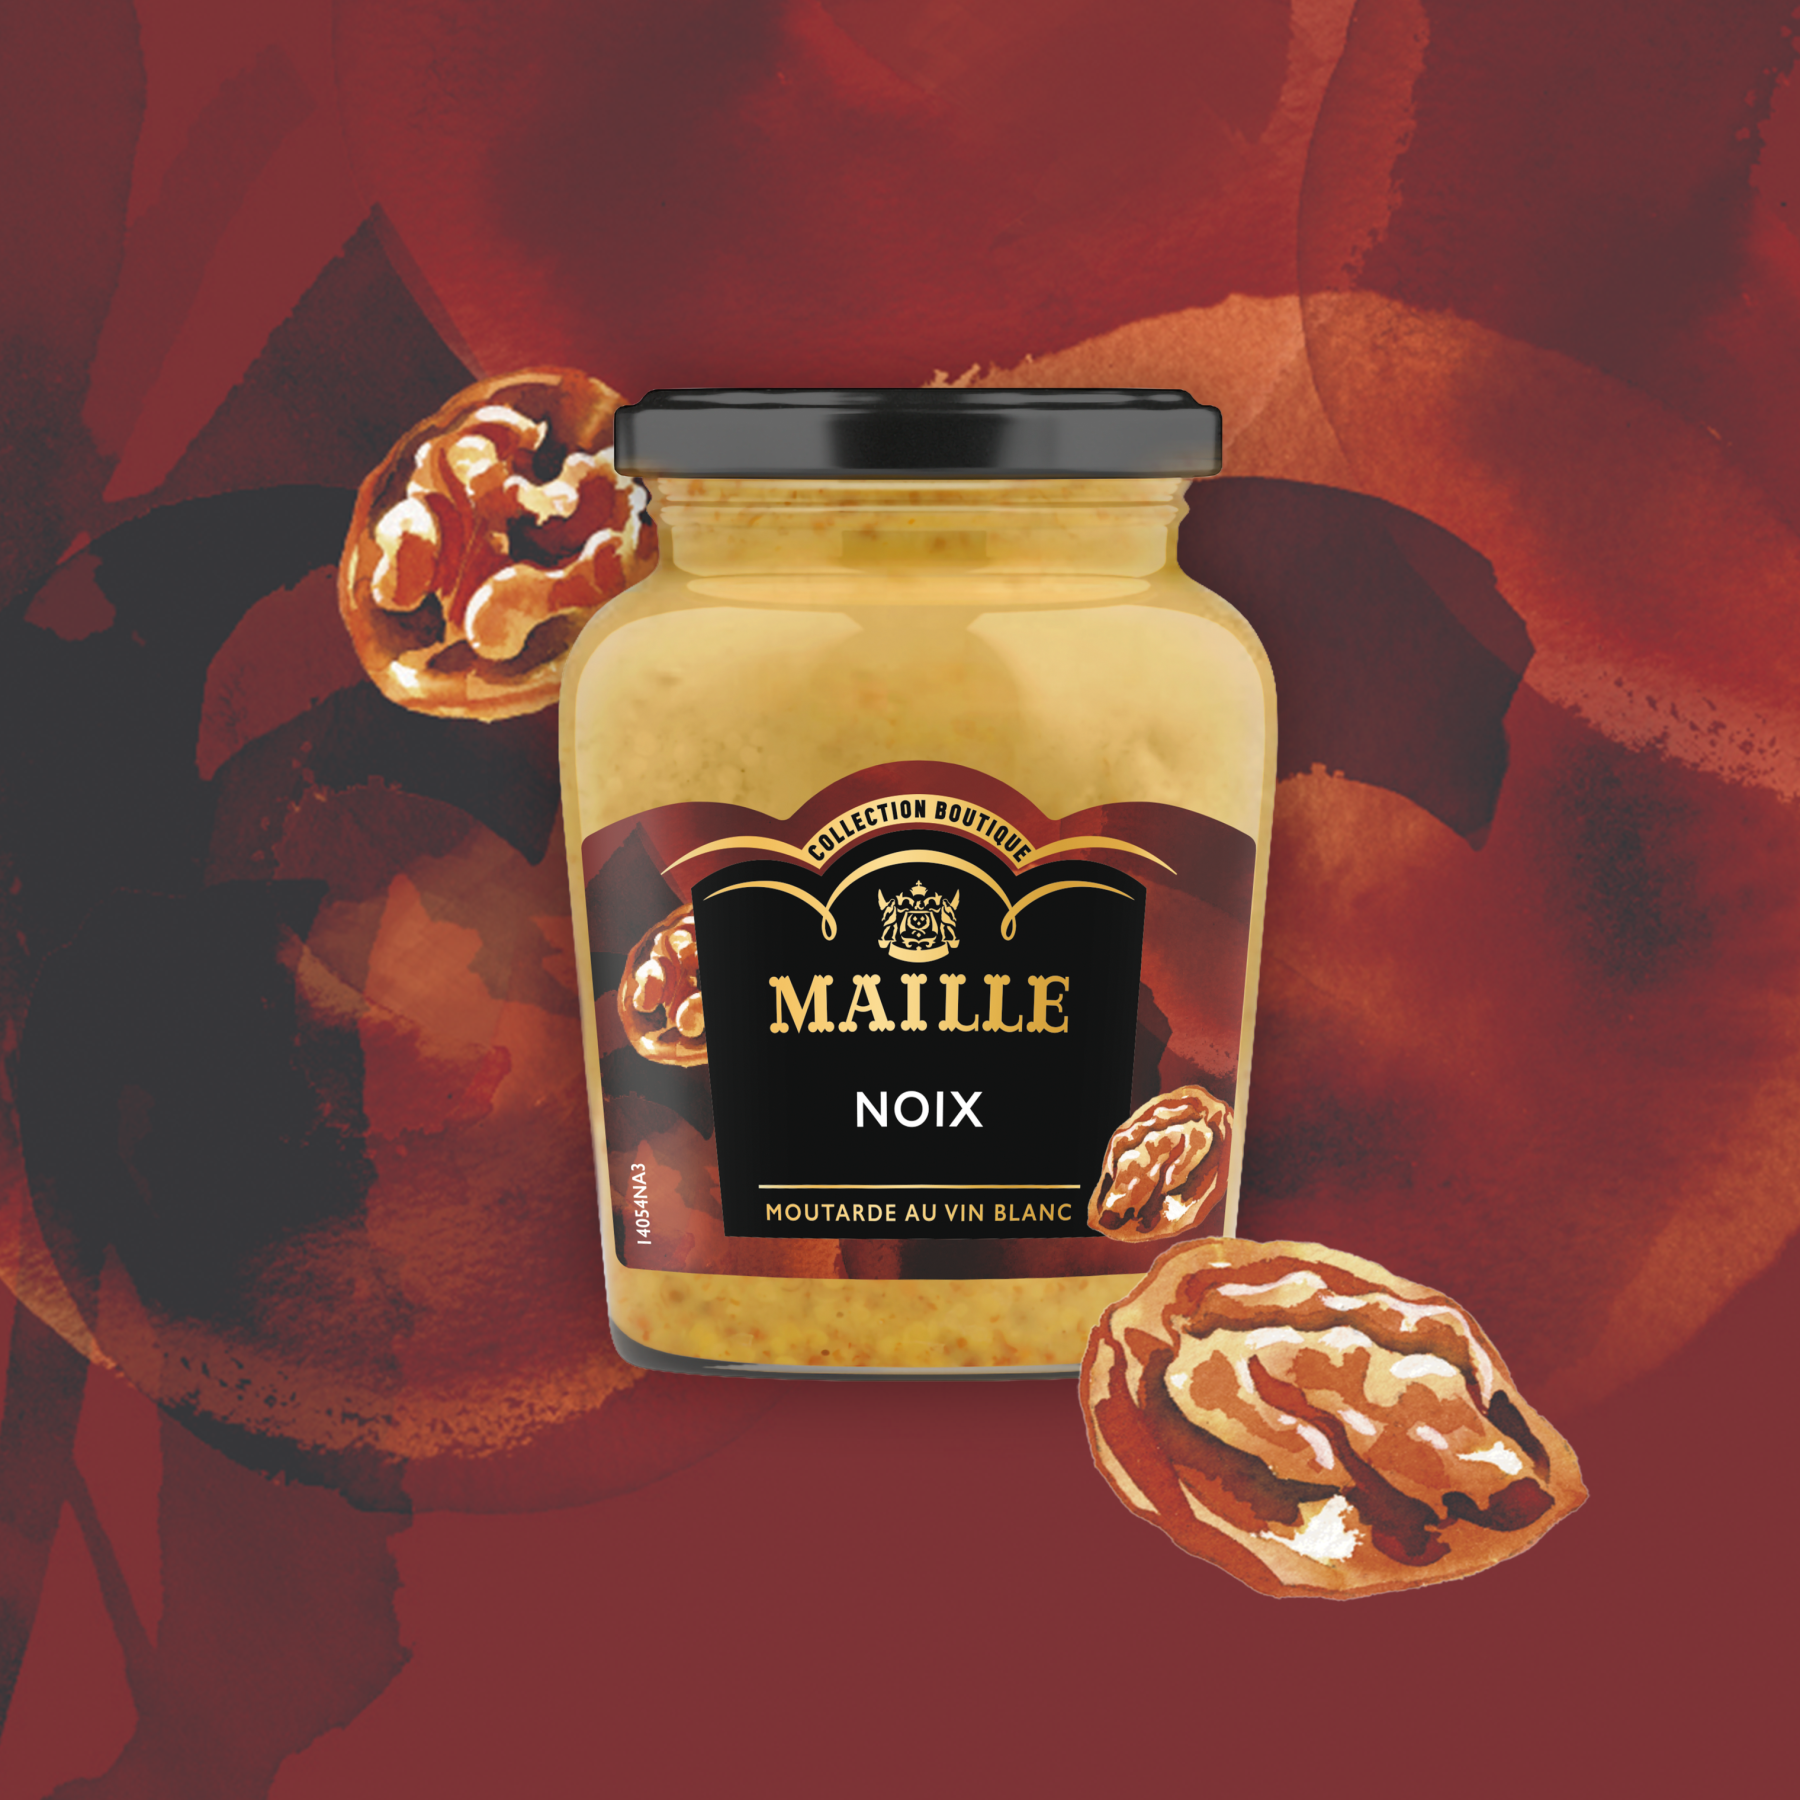 Maille - Moutarde au vin blanc, noix, 108 g, new visual